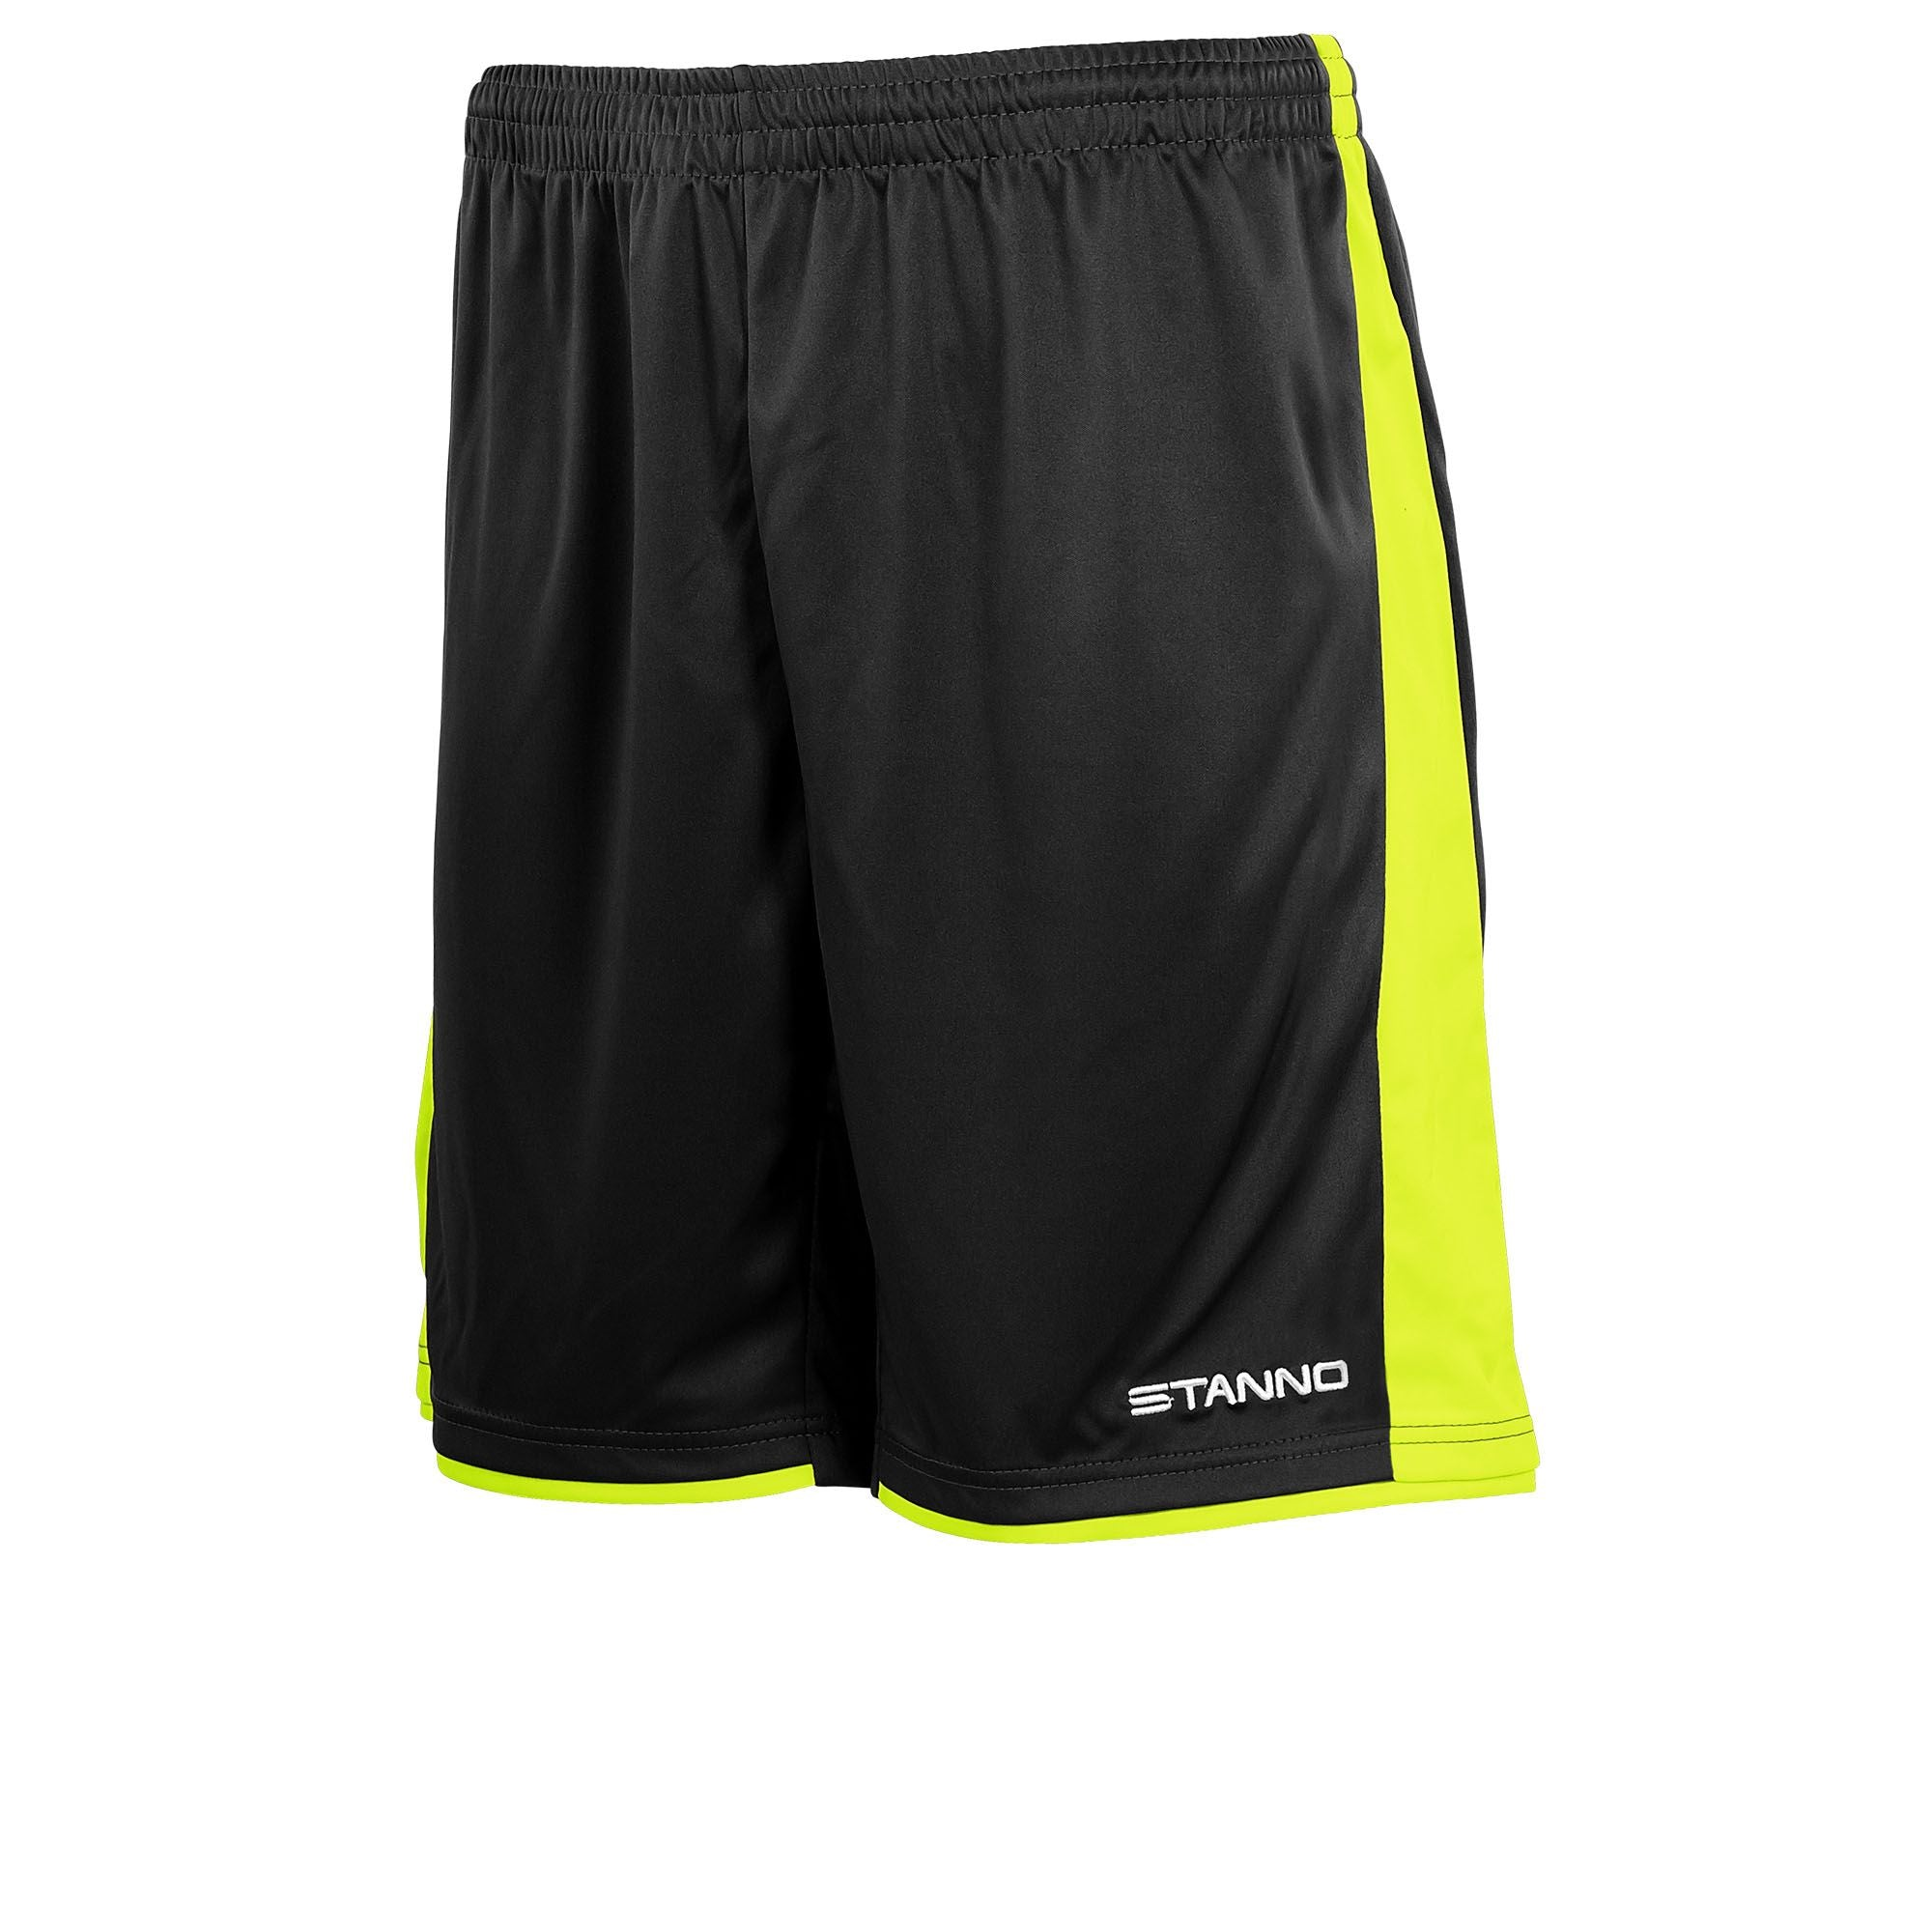 Stanno Milan Shorts - Black/Neon Yellow